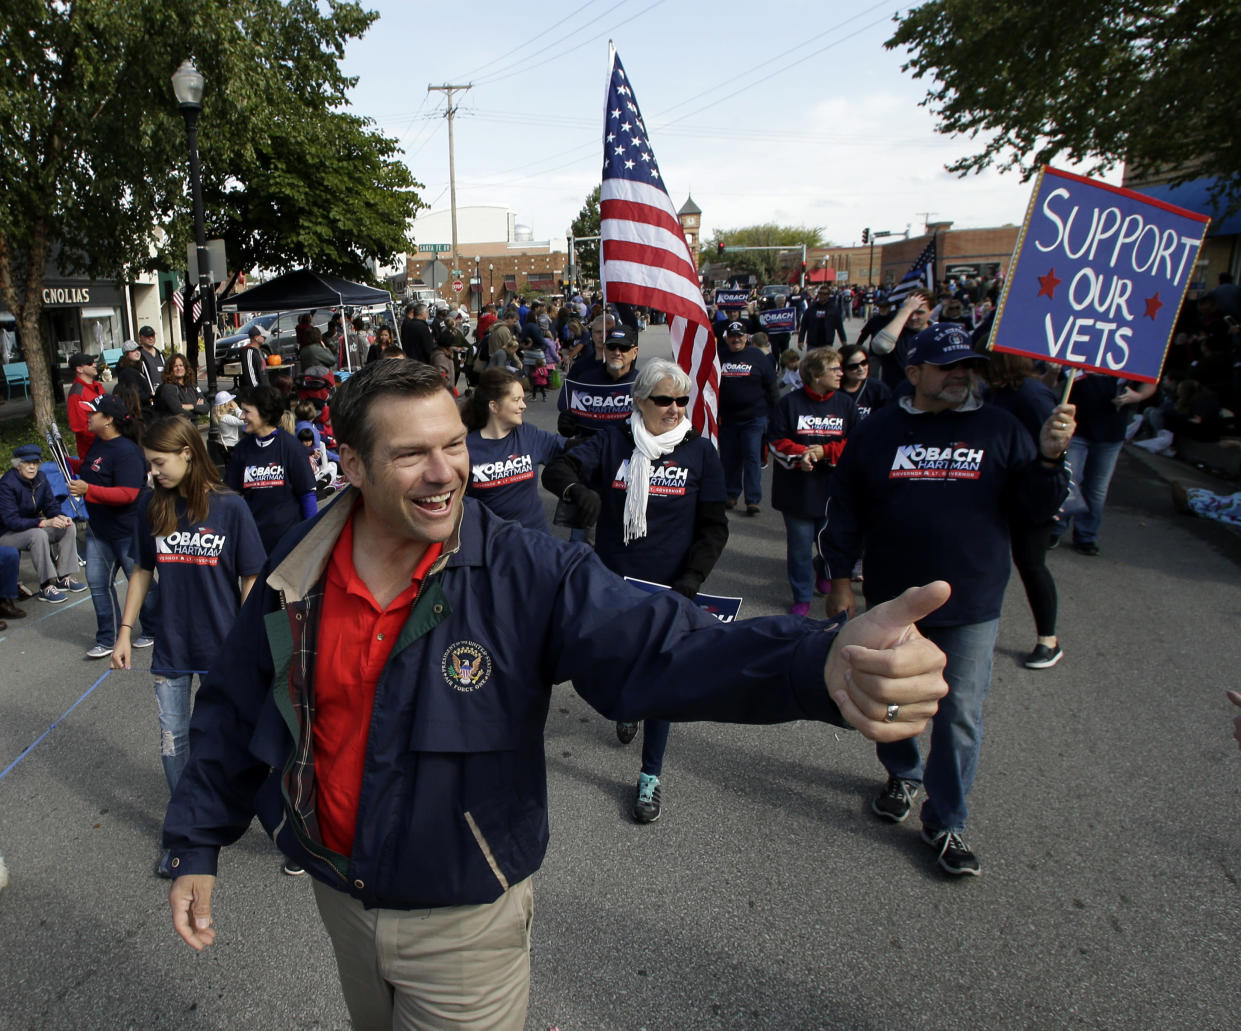 Kobach gives a thumbs-up sign during a parade on Sept. 29, 2018, in Overland Park, Kan. (Photo: Charlie Riedel/AP)